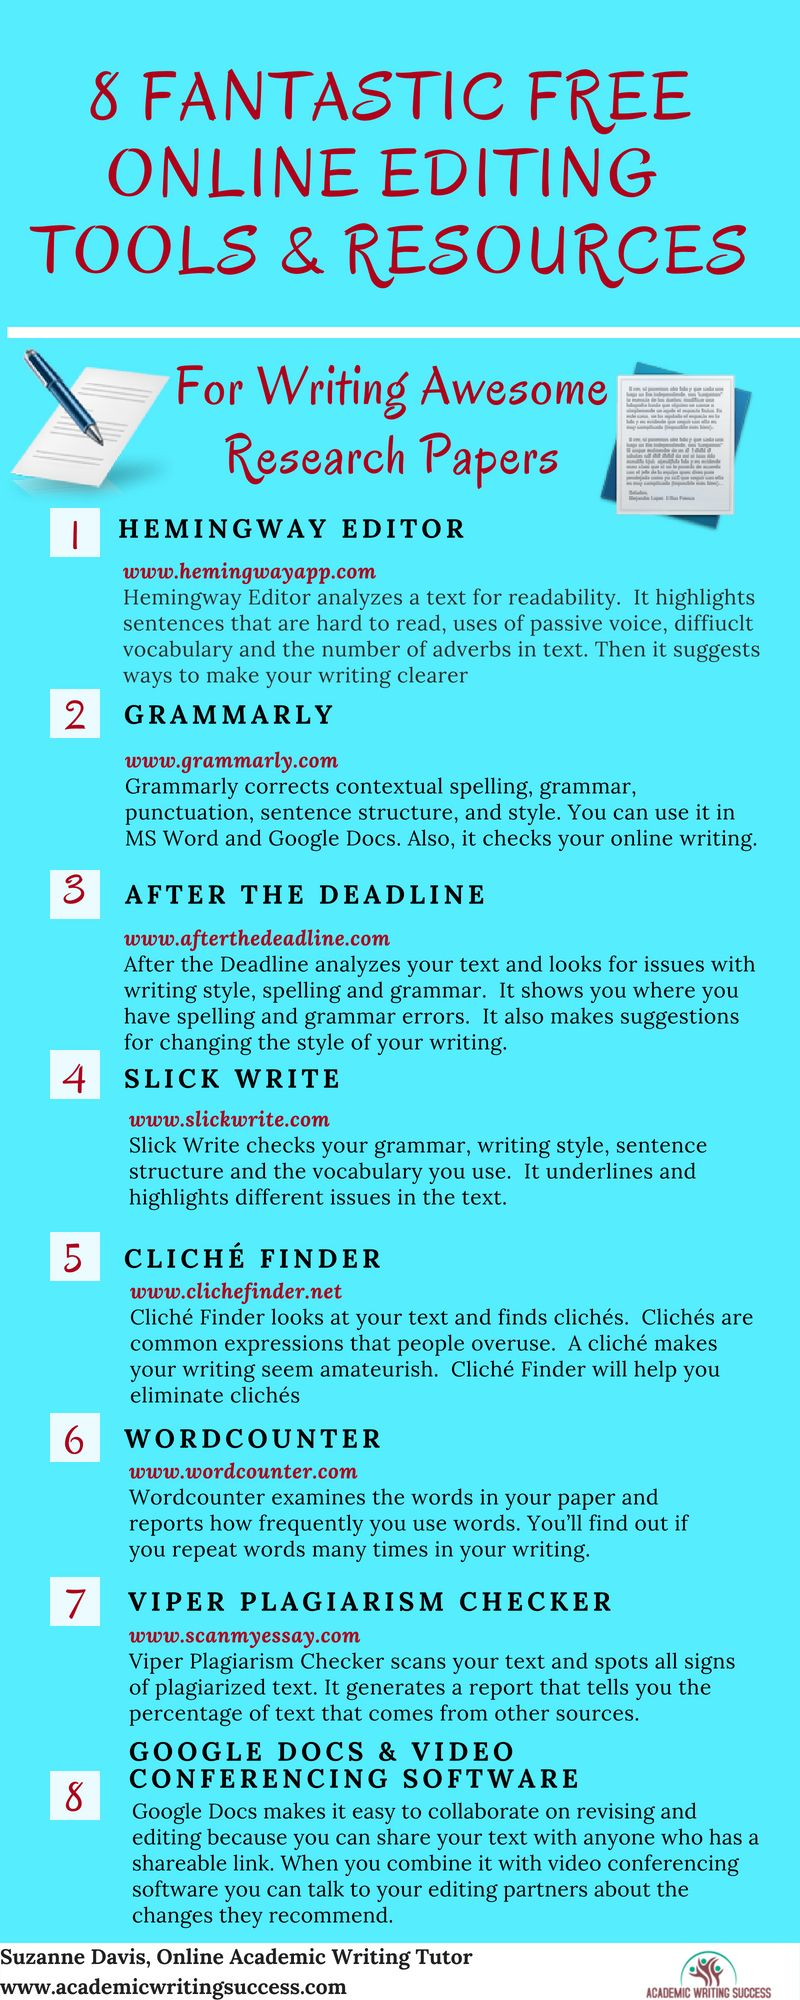 001 Research Paper Free Online Stirring Papers Plagiarism Checker Psychology Download Full